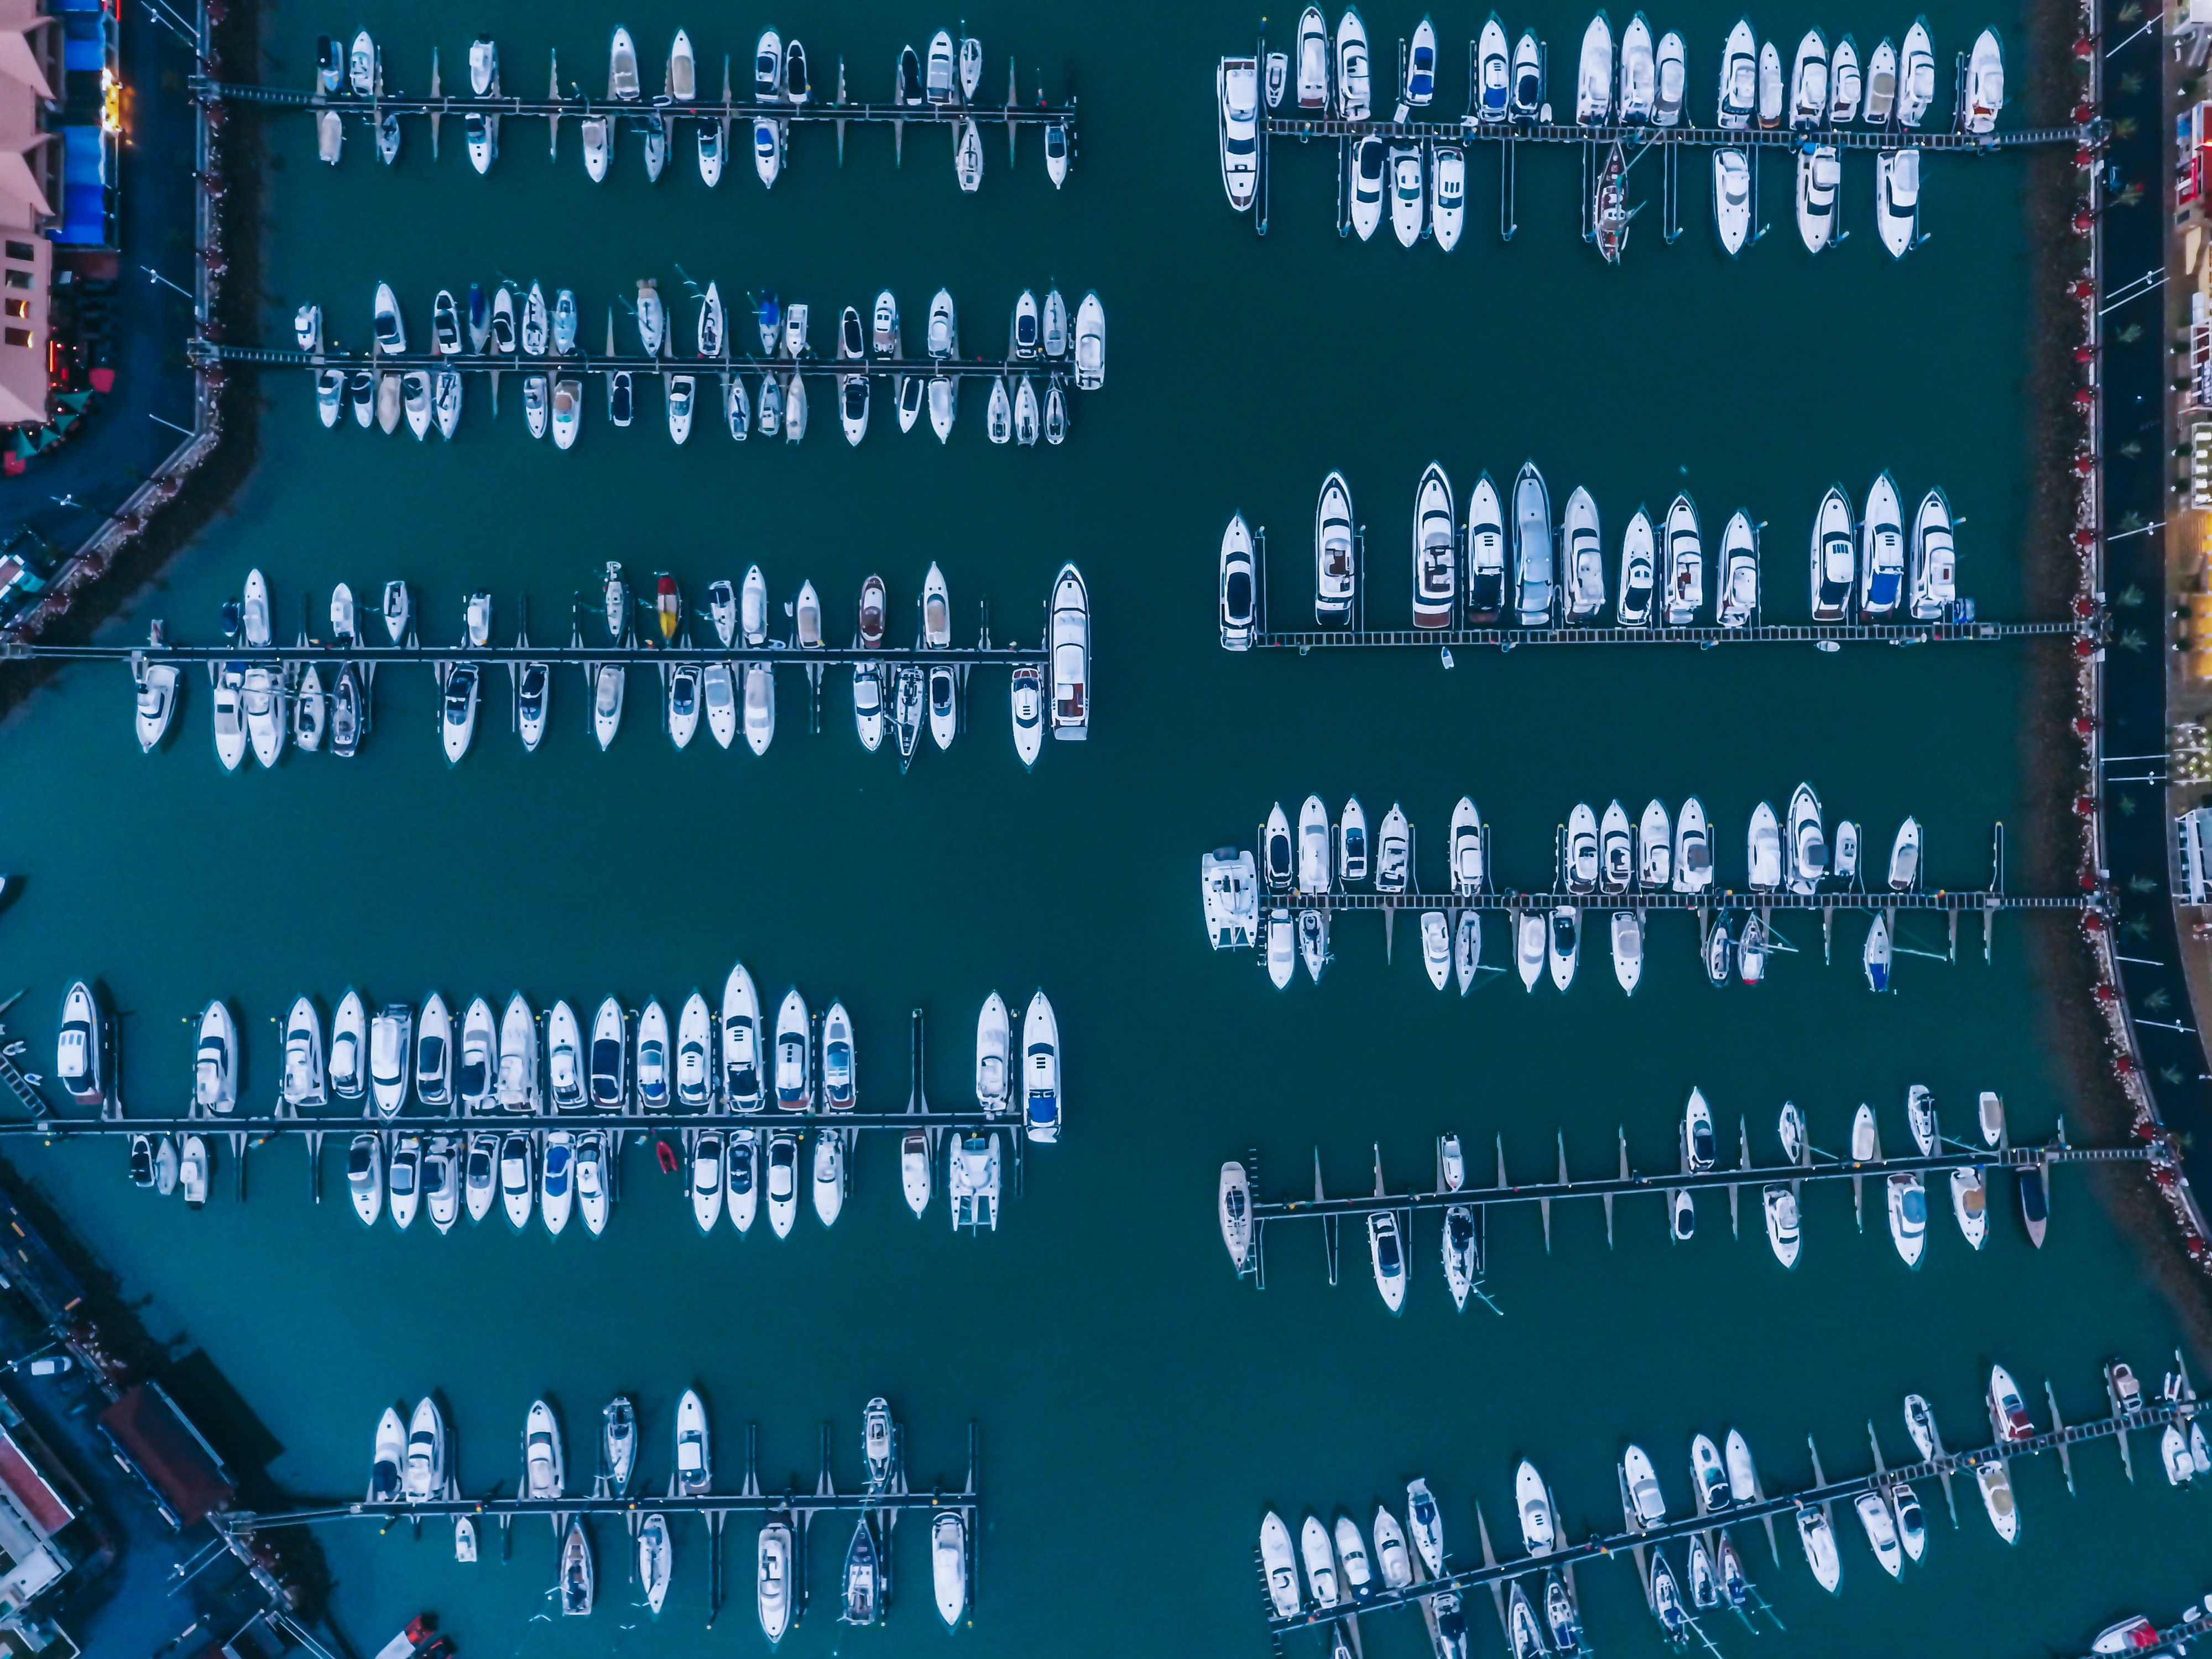 white boats on body of water at daytime